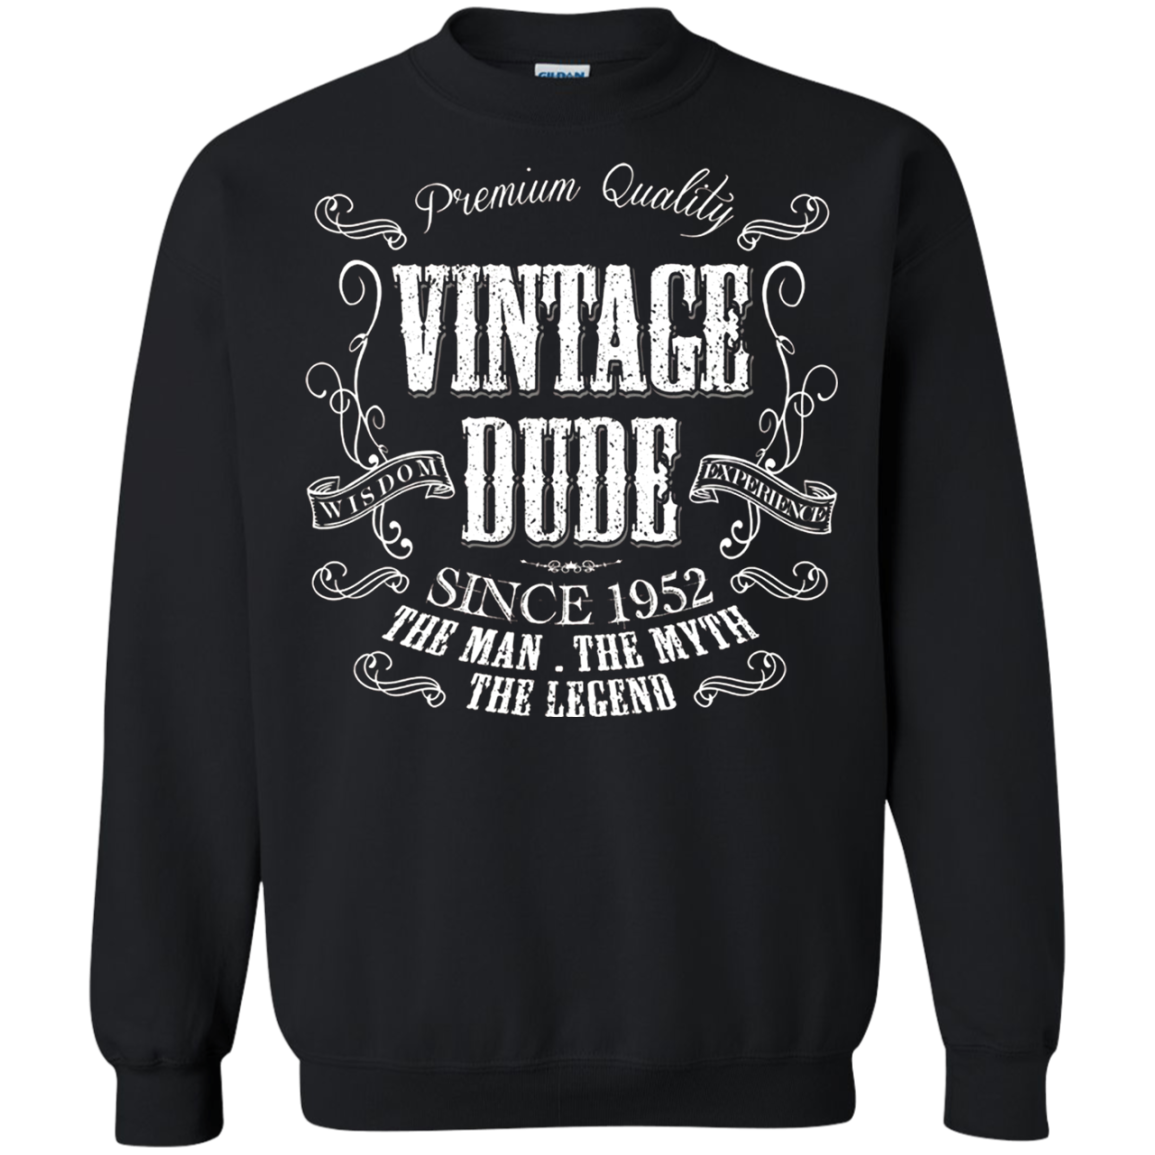 dea8950d 66th Birthday gift shirt Vintage dude 1952 66 year old T shirt ...